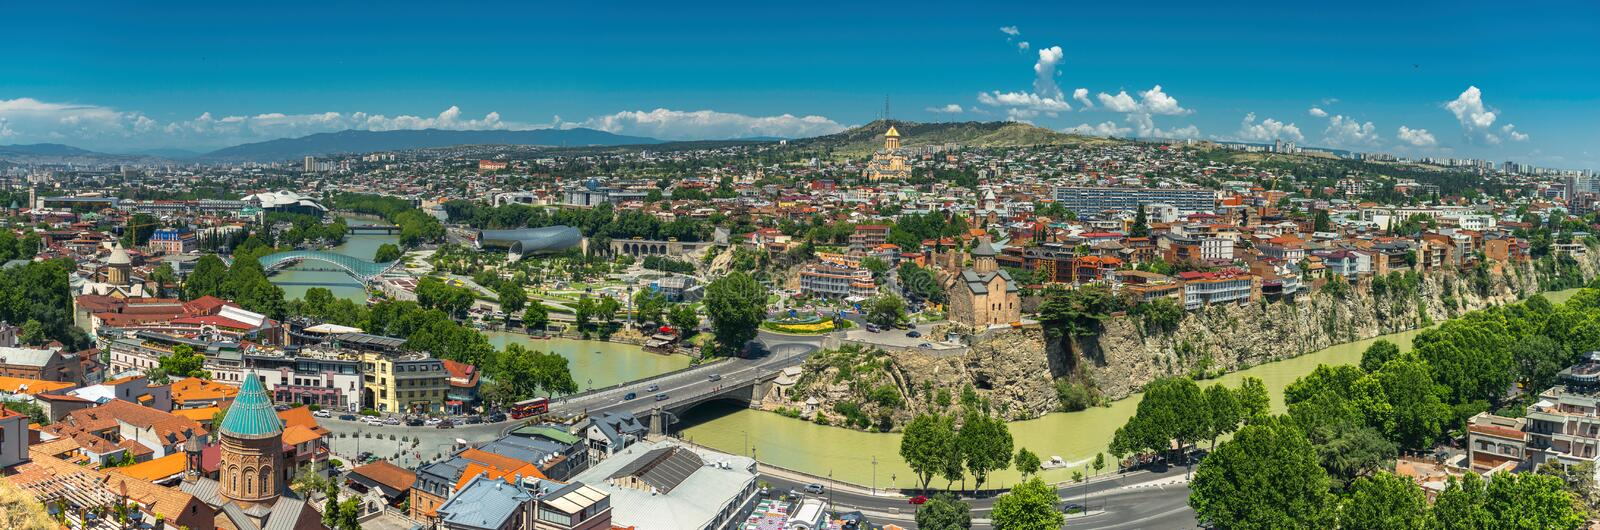 Panoramic beautiful top view of historic part of Tbilisi. Georgia in summer. stock photos